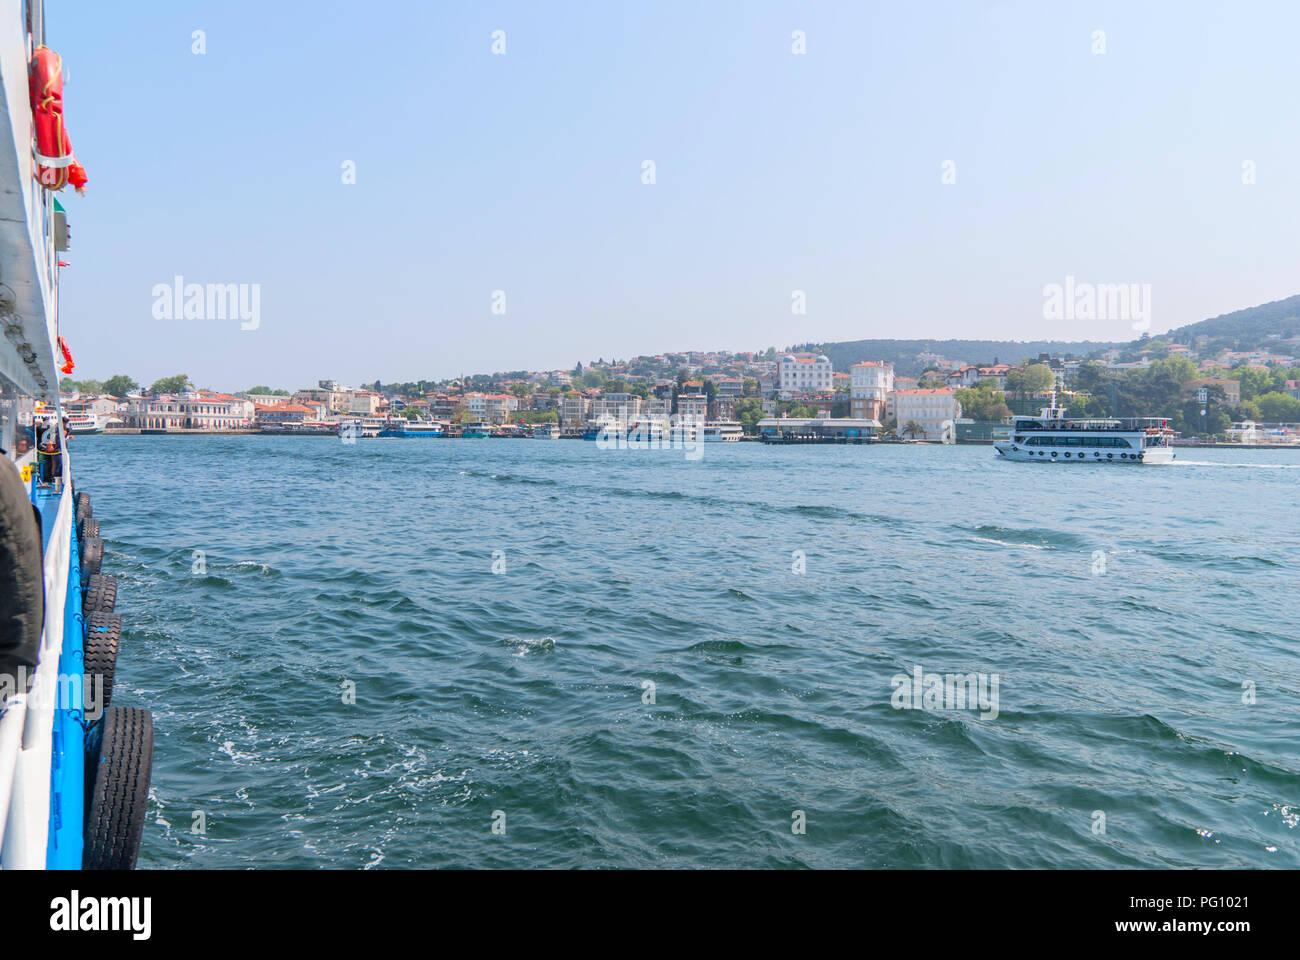 View of the Prince's Islands and the Sea of Marmara from the ferry boat - Stock Image